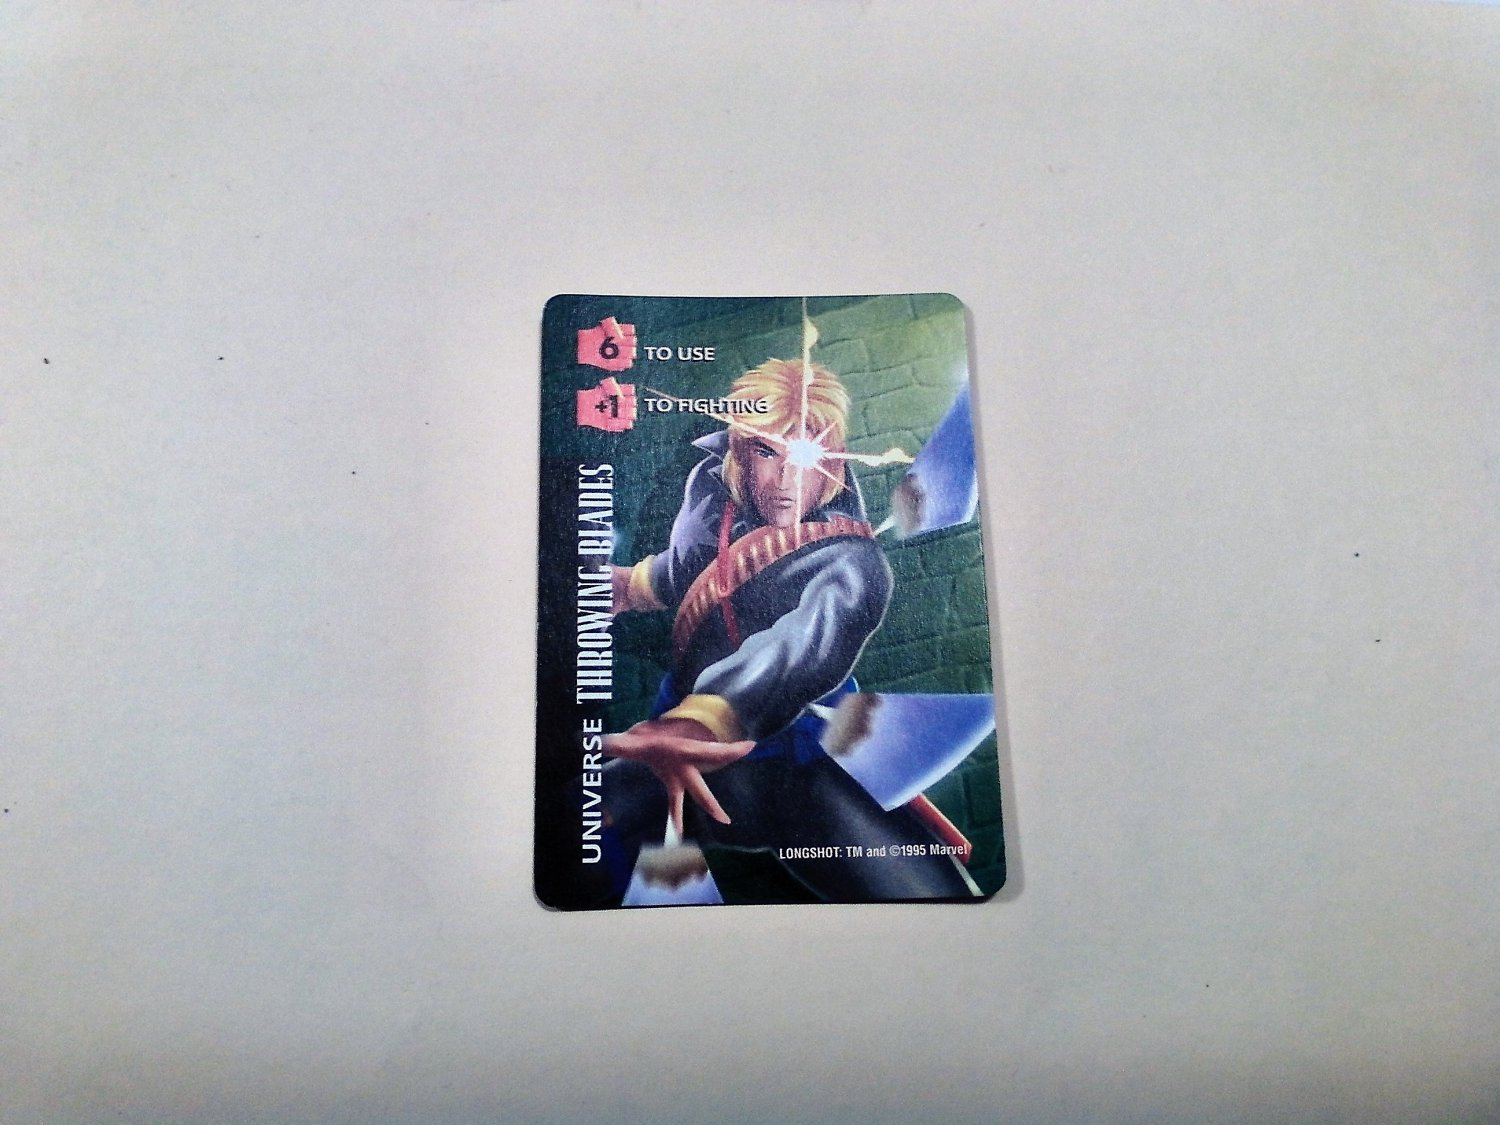 Marvel OverPower - Longshot Throwing Blades No. 339 Common, Universe Card (1995) Fleer